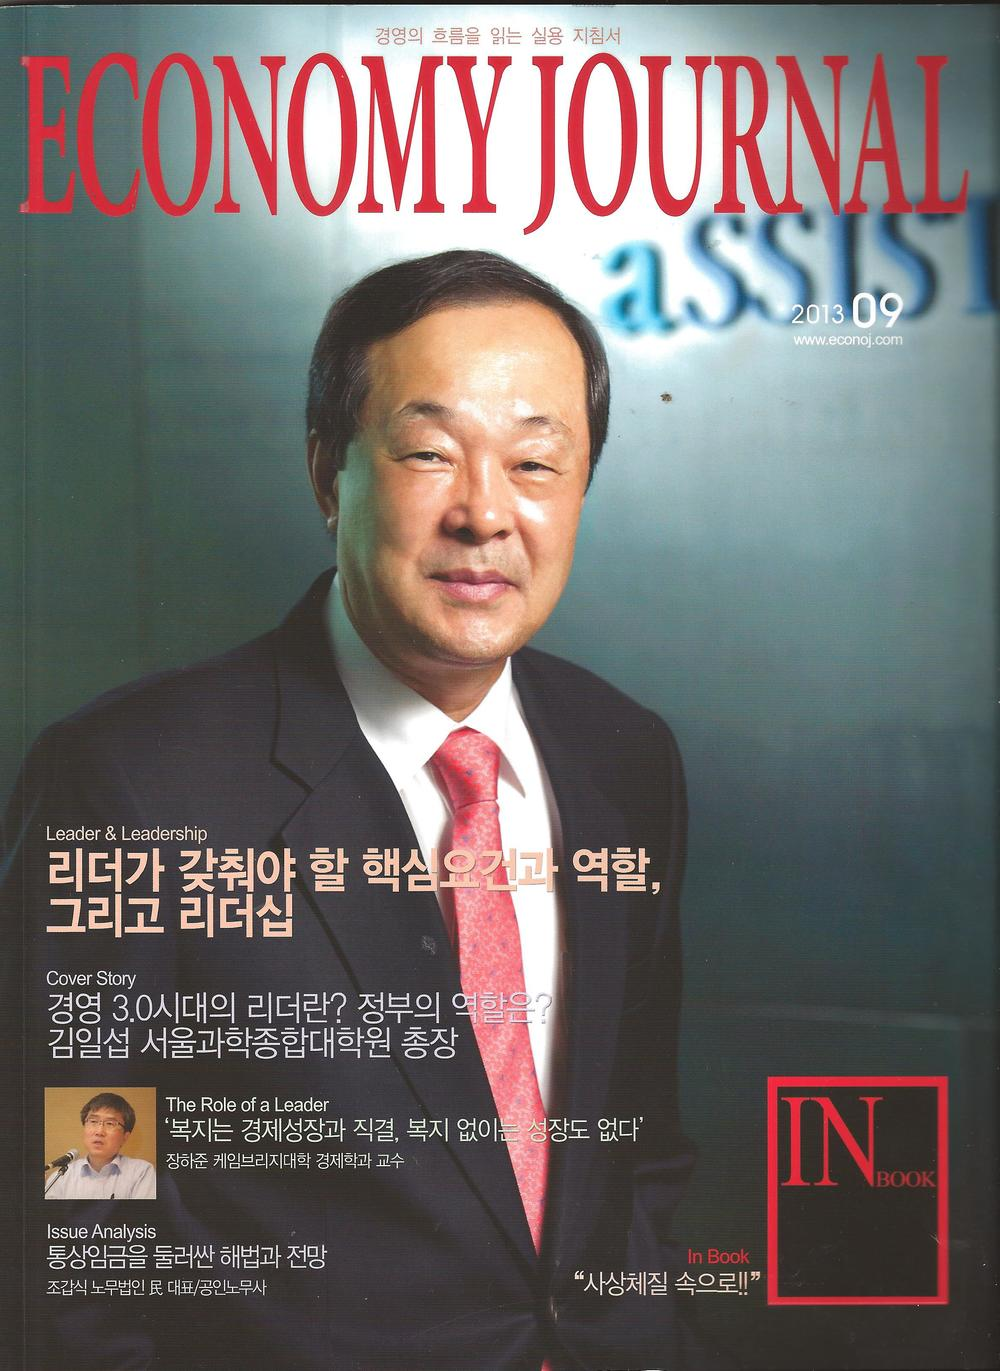 2013-9 Economy journal cover.jpg